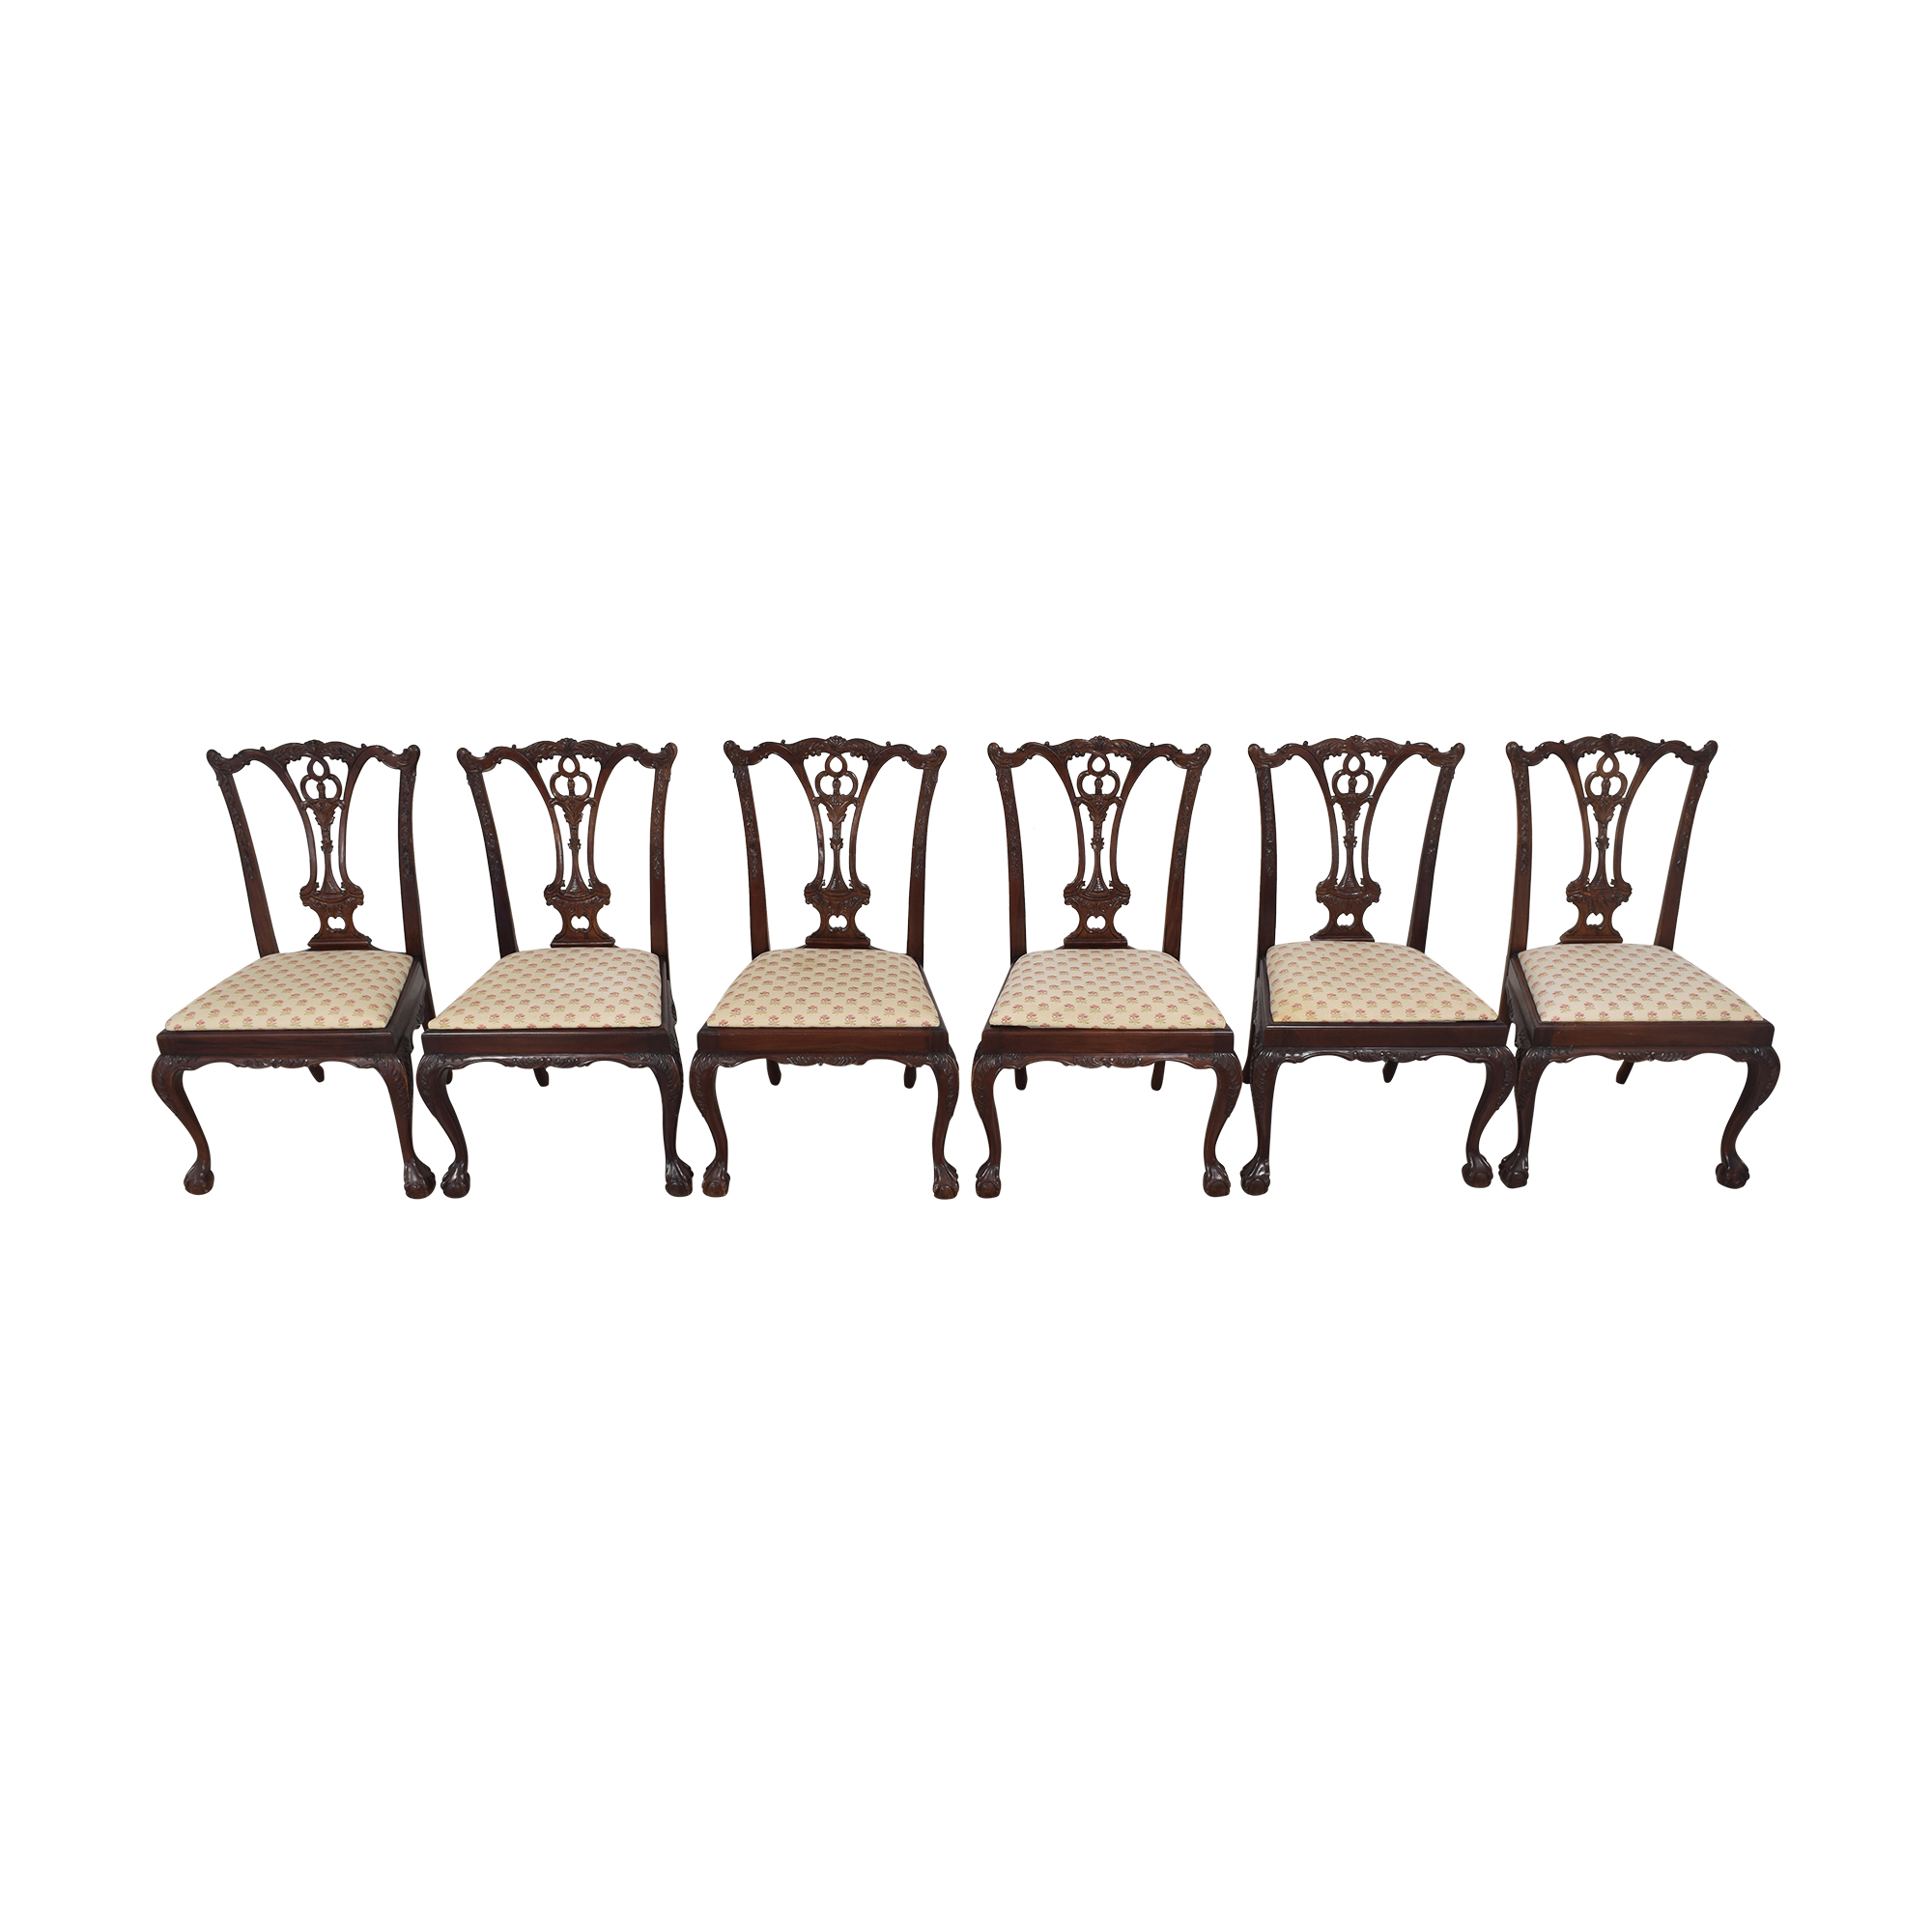 Paramount Antiques Paramount Antiques Chippendale Dining Side Chairs multi